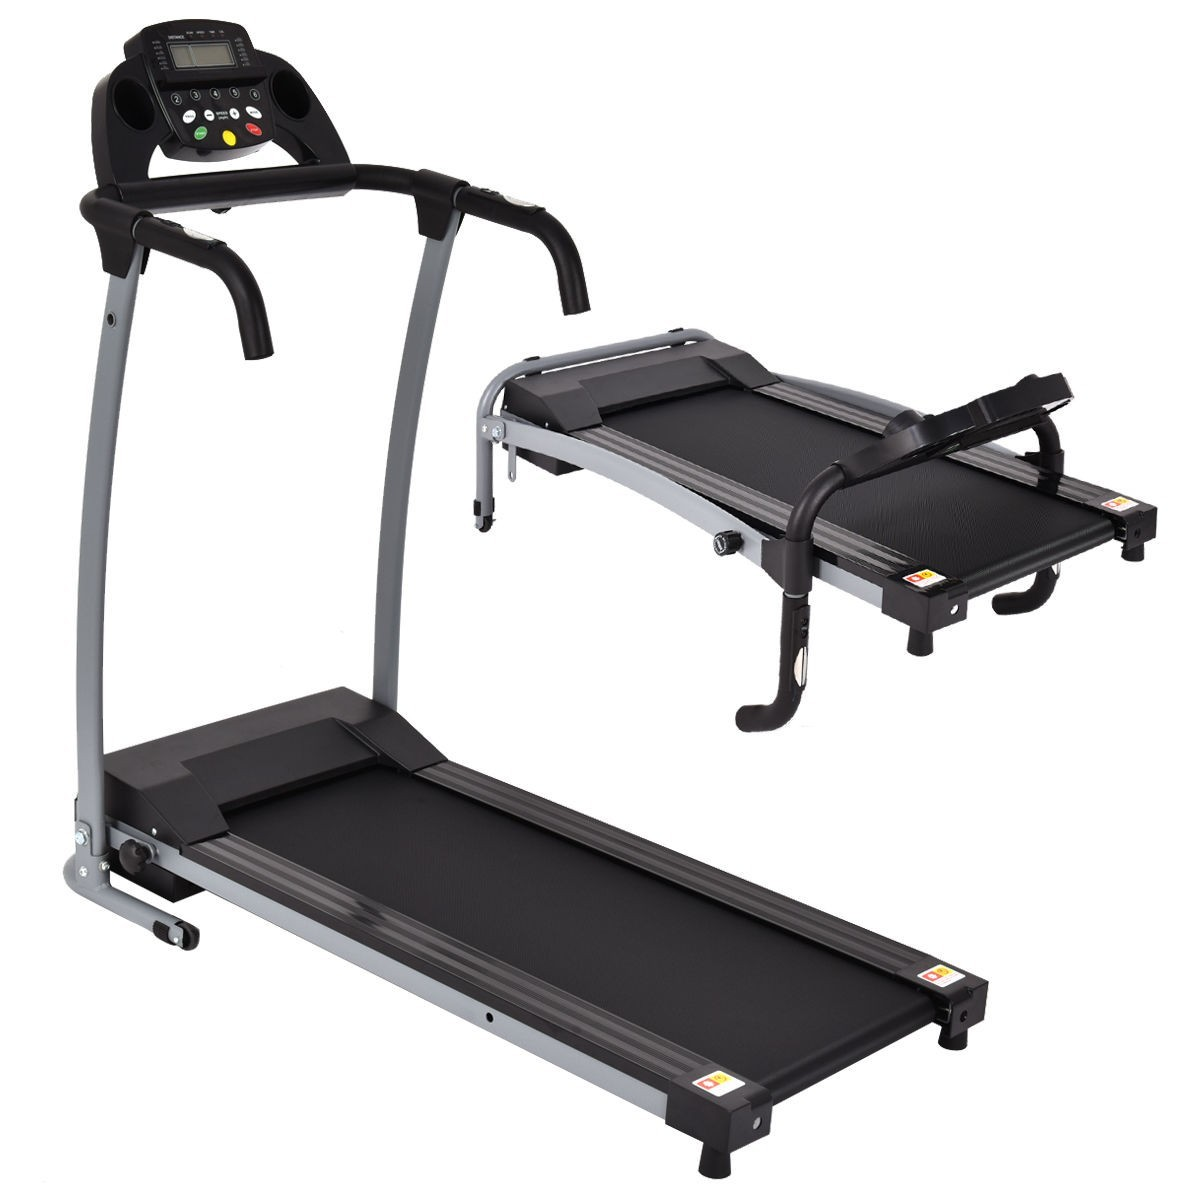 800W Folding Treadmill Electric Portable Motorized Power Running Fitness Machine